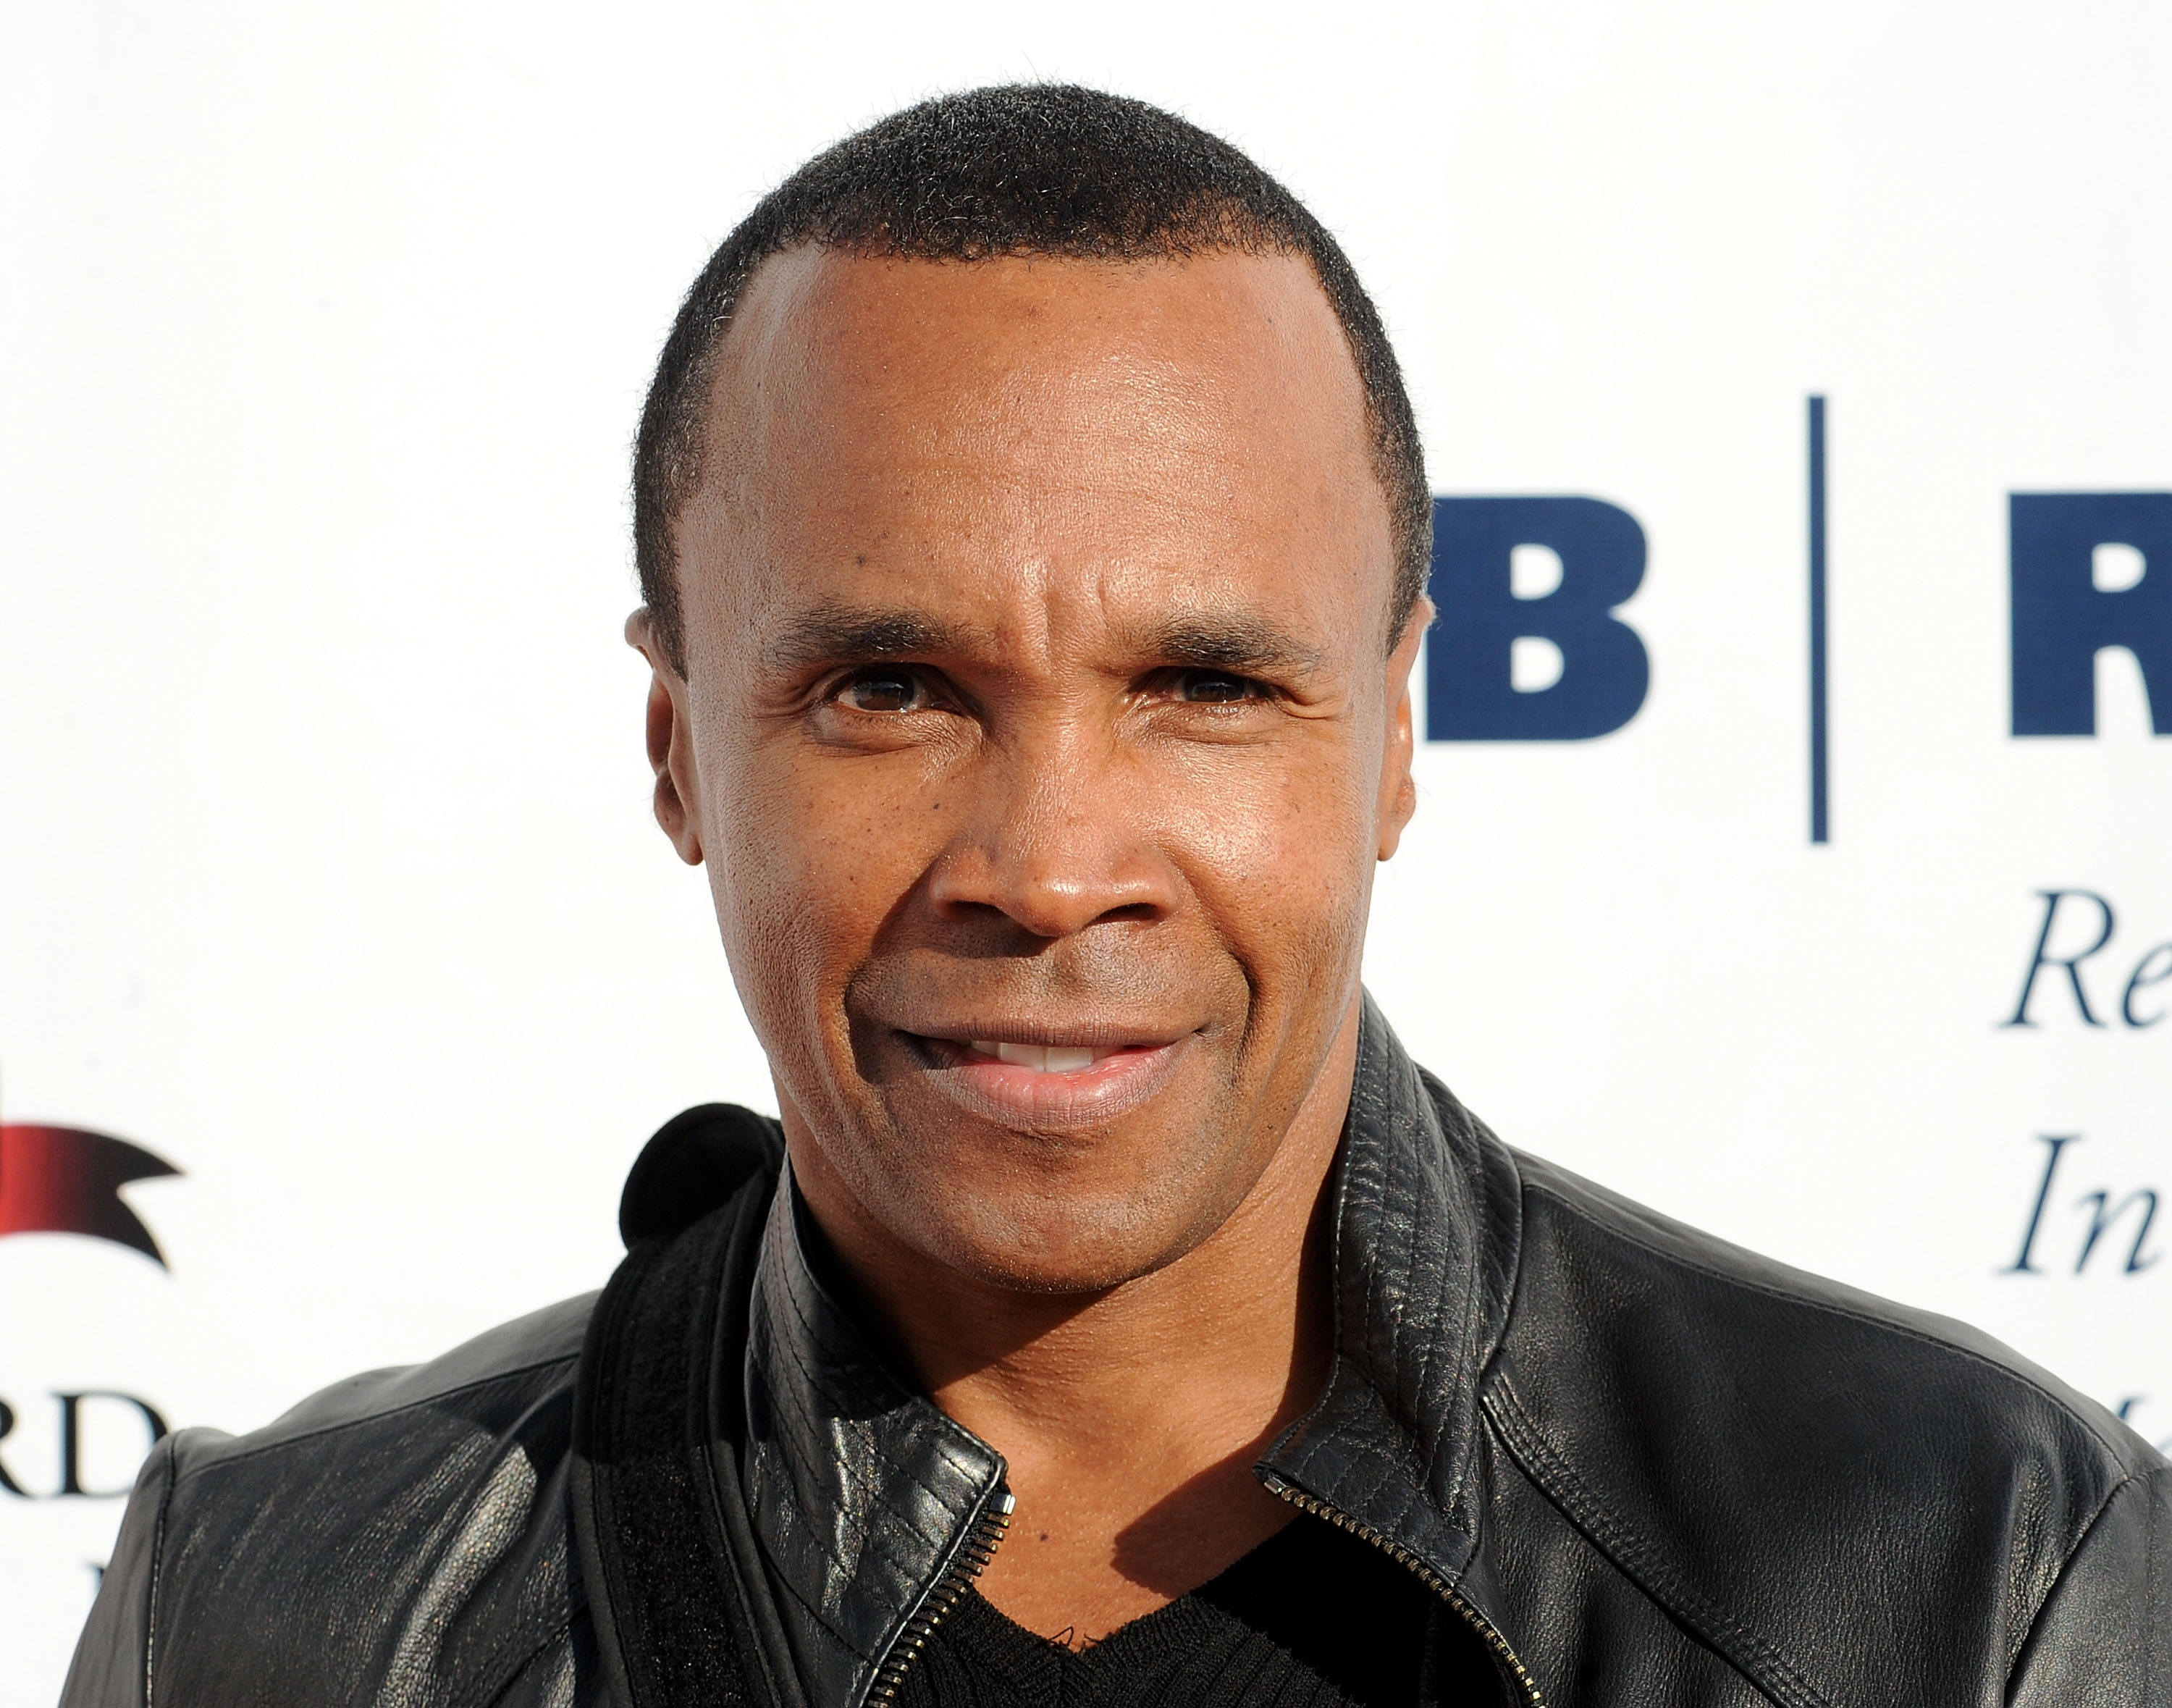 Sugar Ray Leonard Got To Keep His $1.5 Million Home in His Hostile Divorce With His 1st Wife